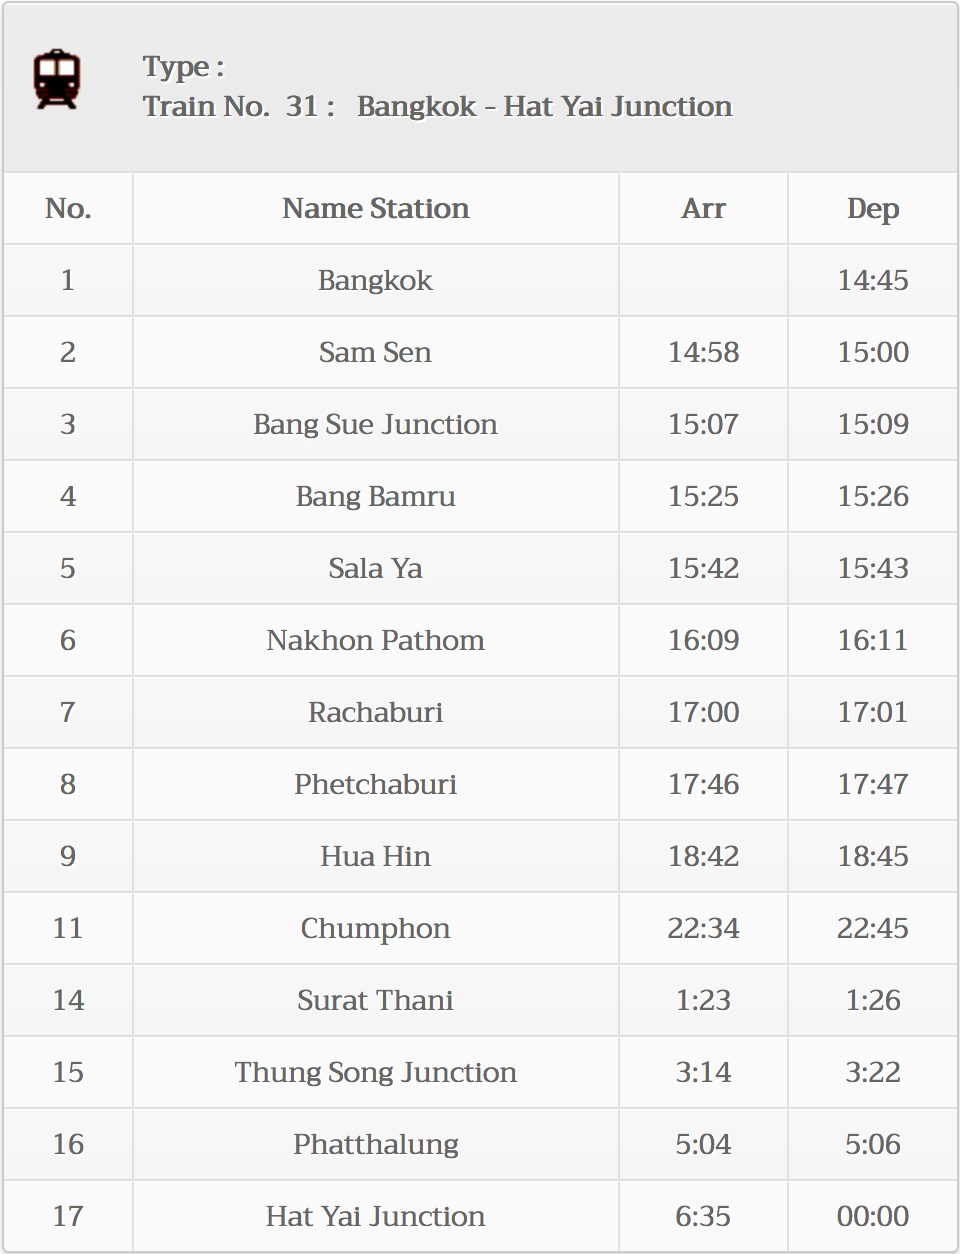 train-31-bangkok-to-hat-yai-timetable.png